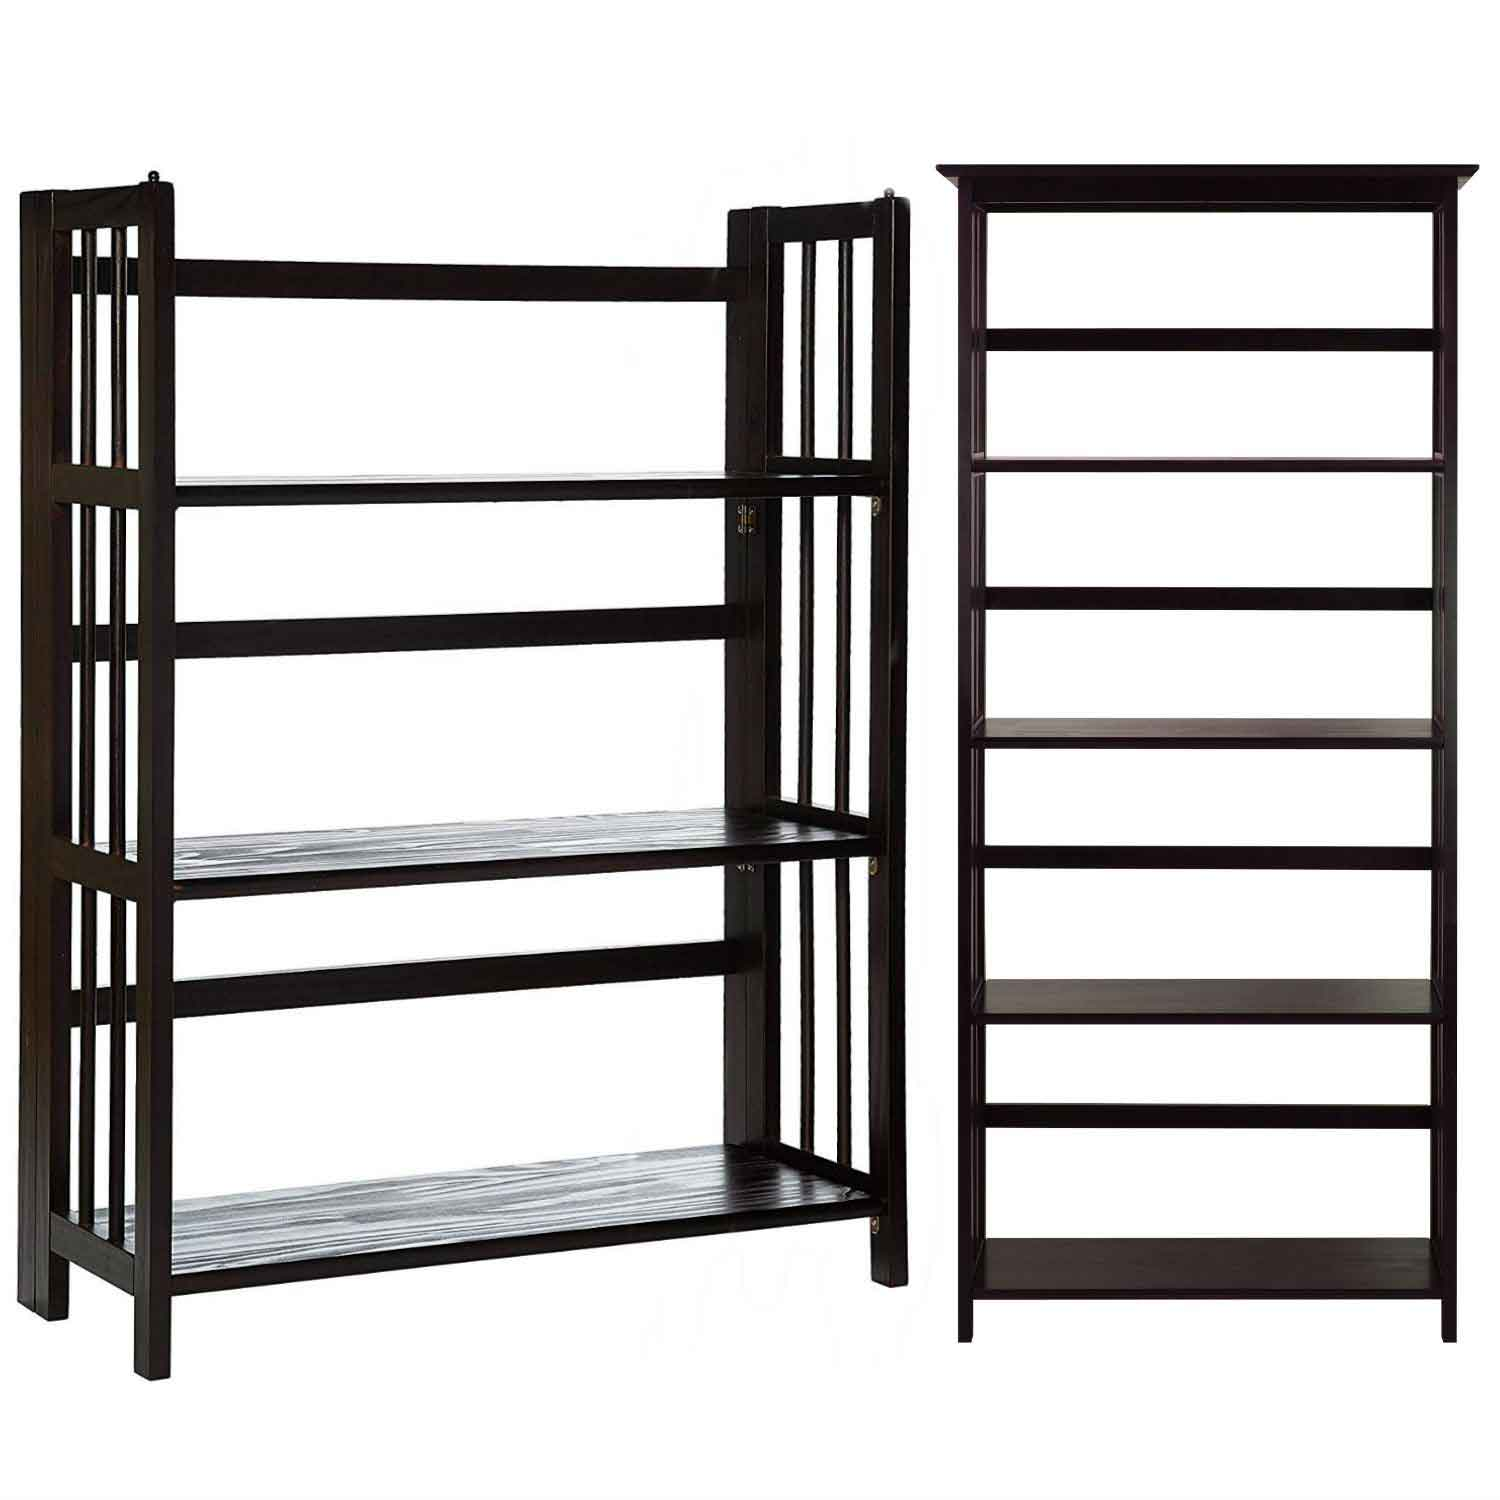 Casual home mission style 5-tier bookcase 3